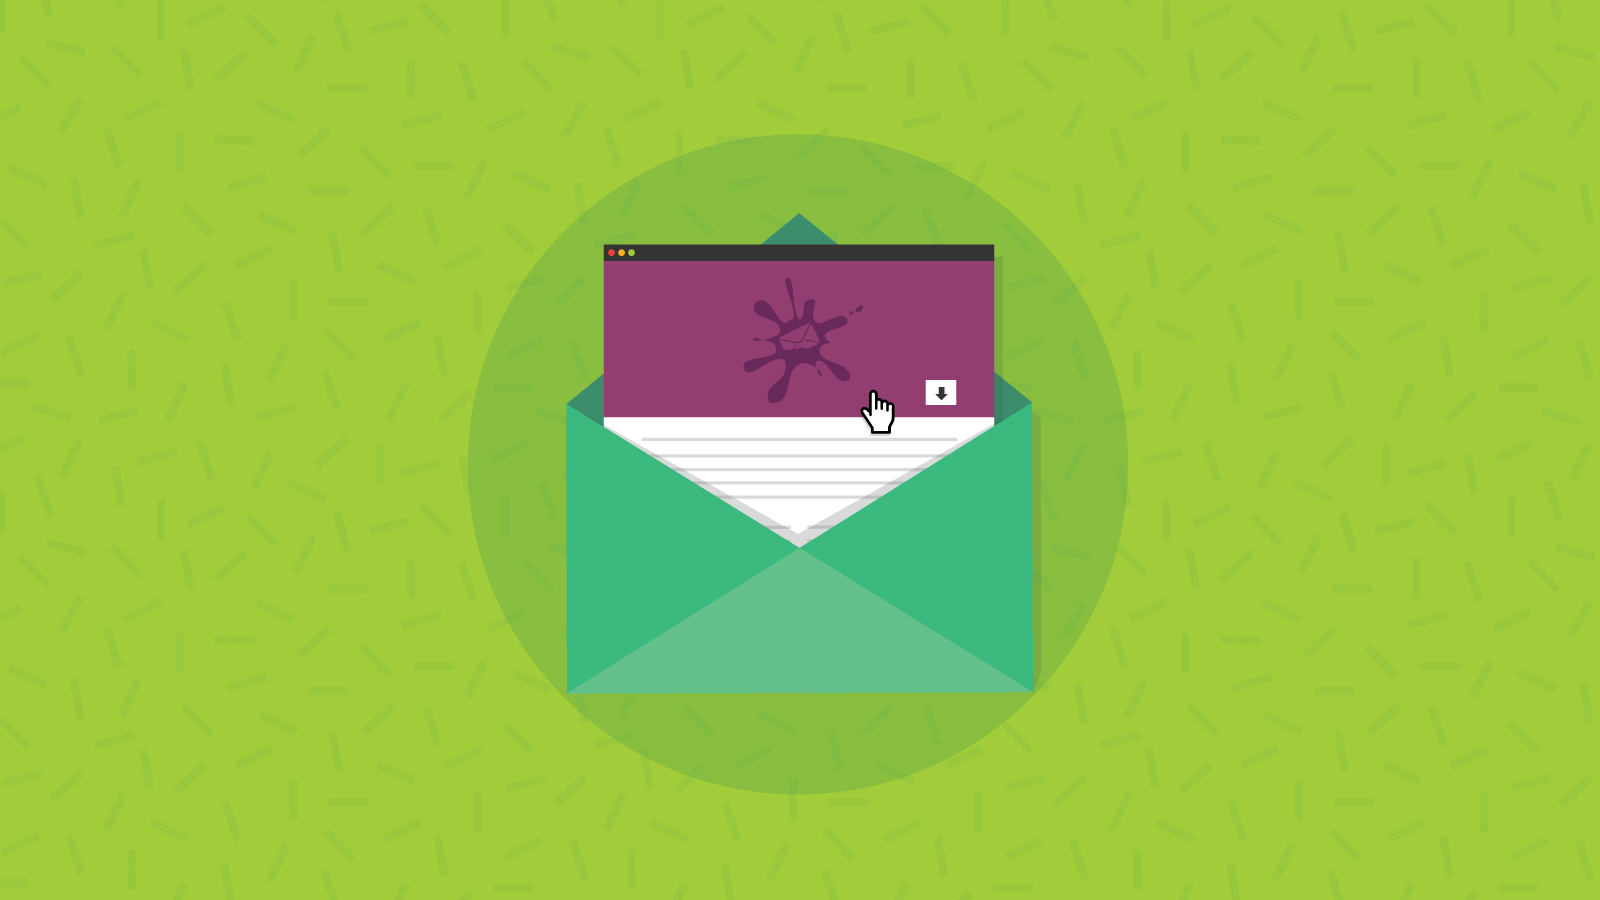 How To Prevent Gmail From Displaying An Image Download Button In Your Email Email On Acid